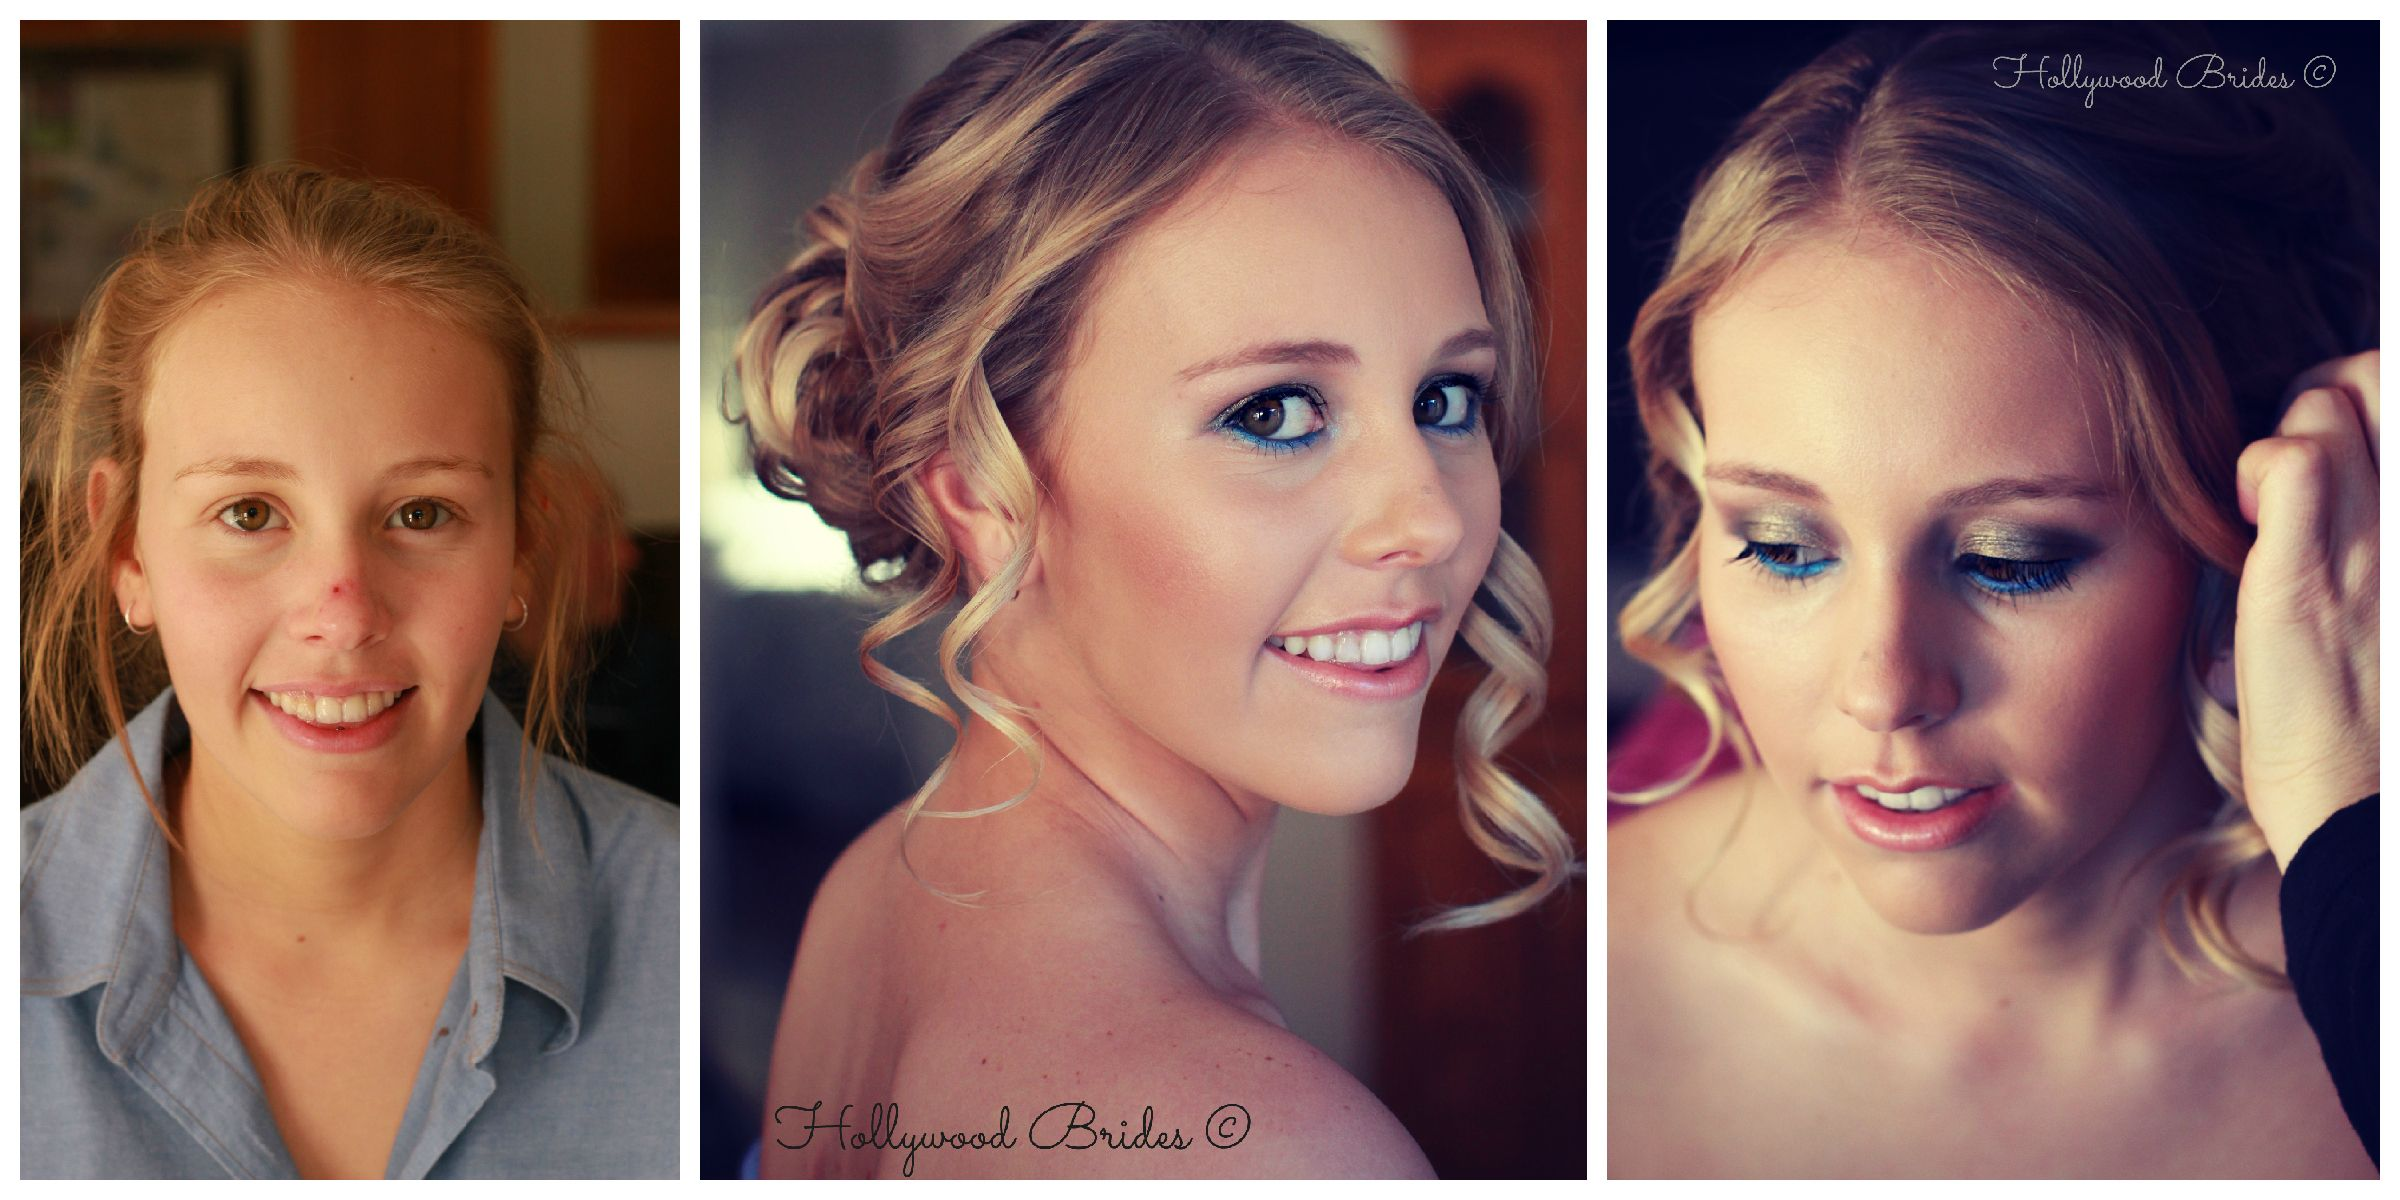 Boho hair makeup & photography from Hollywood brides Brisbane